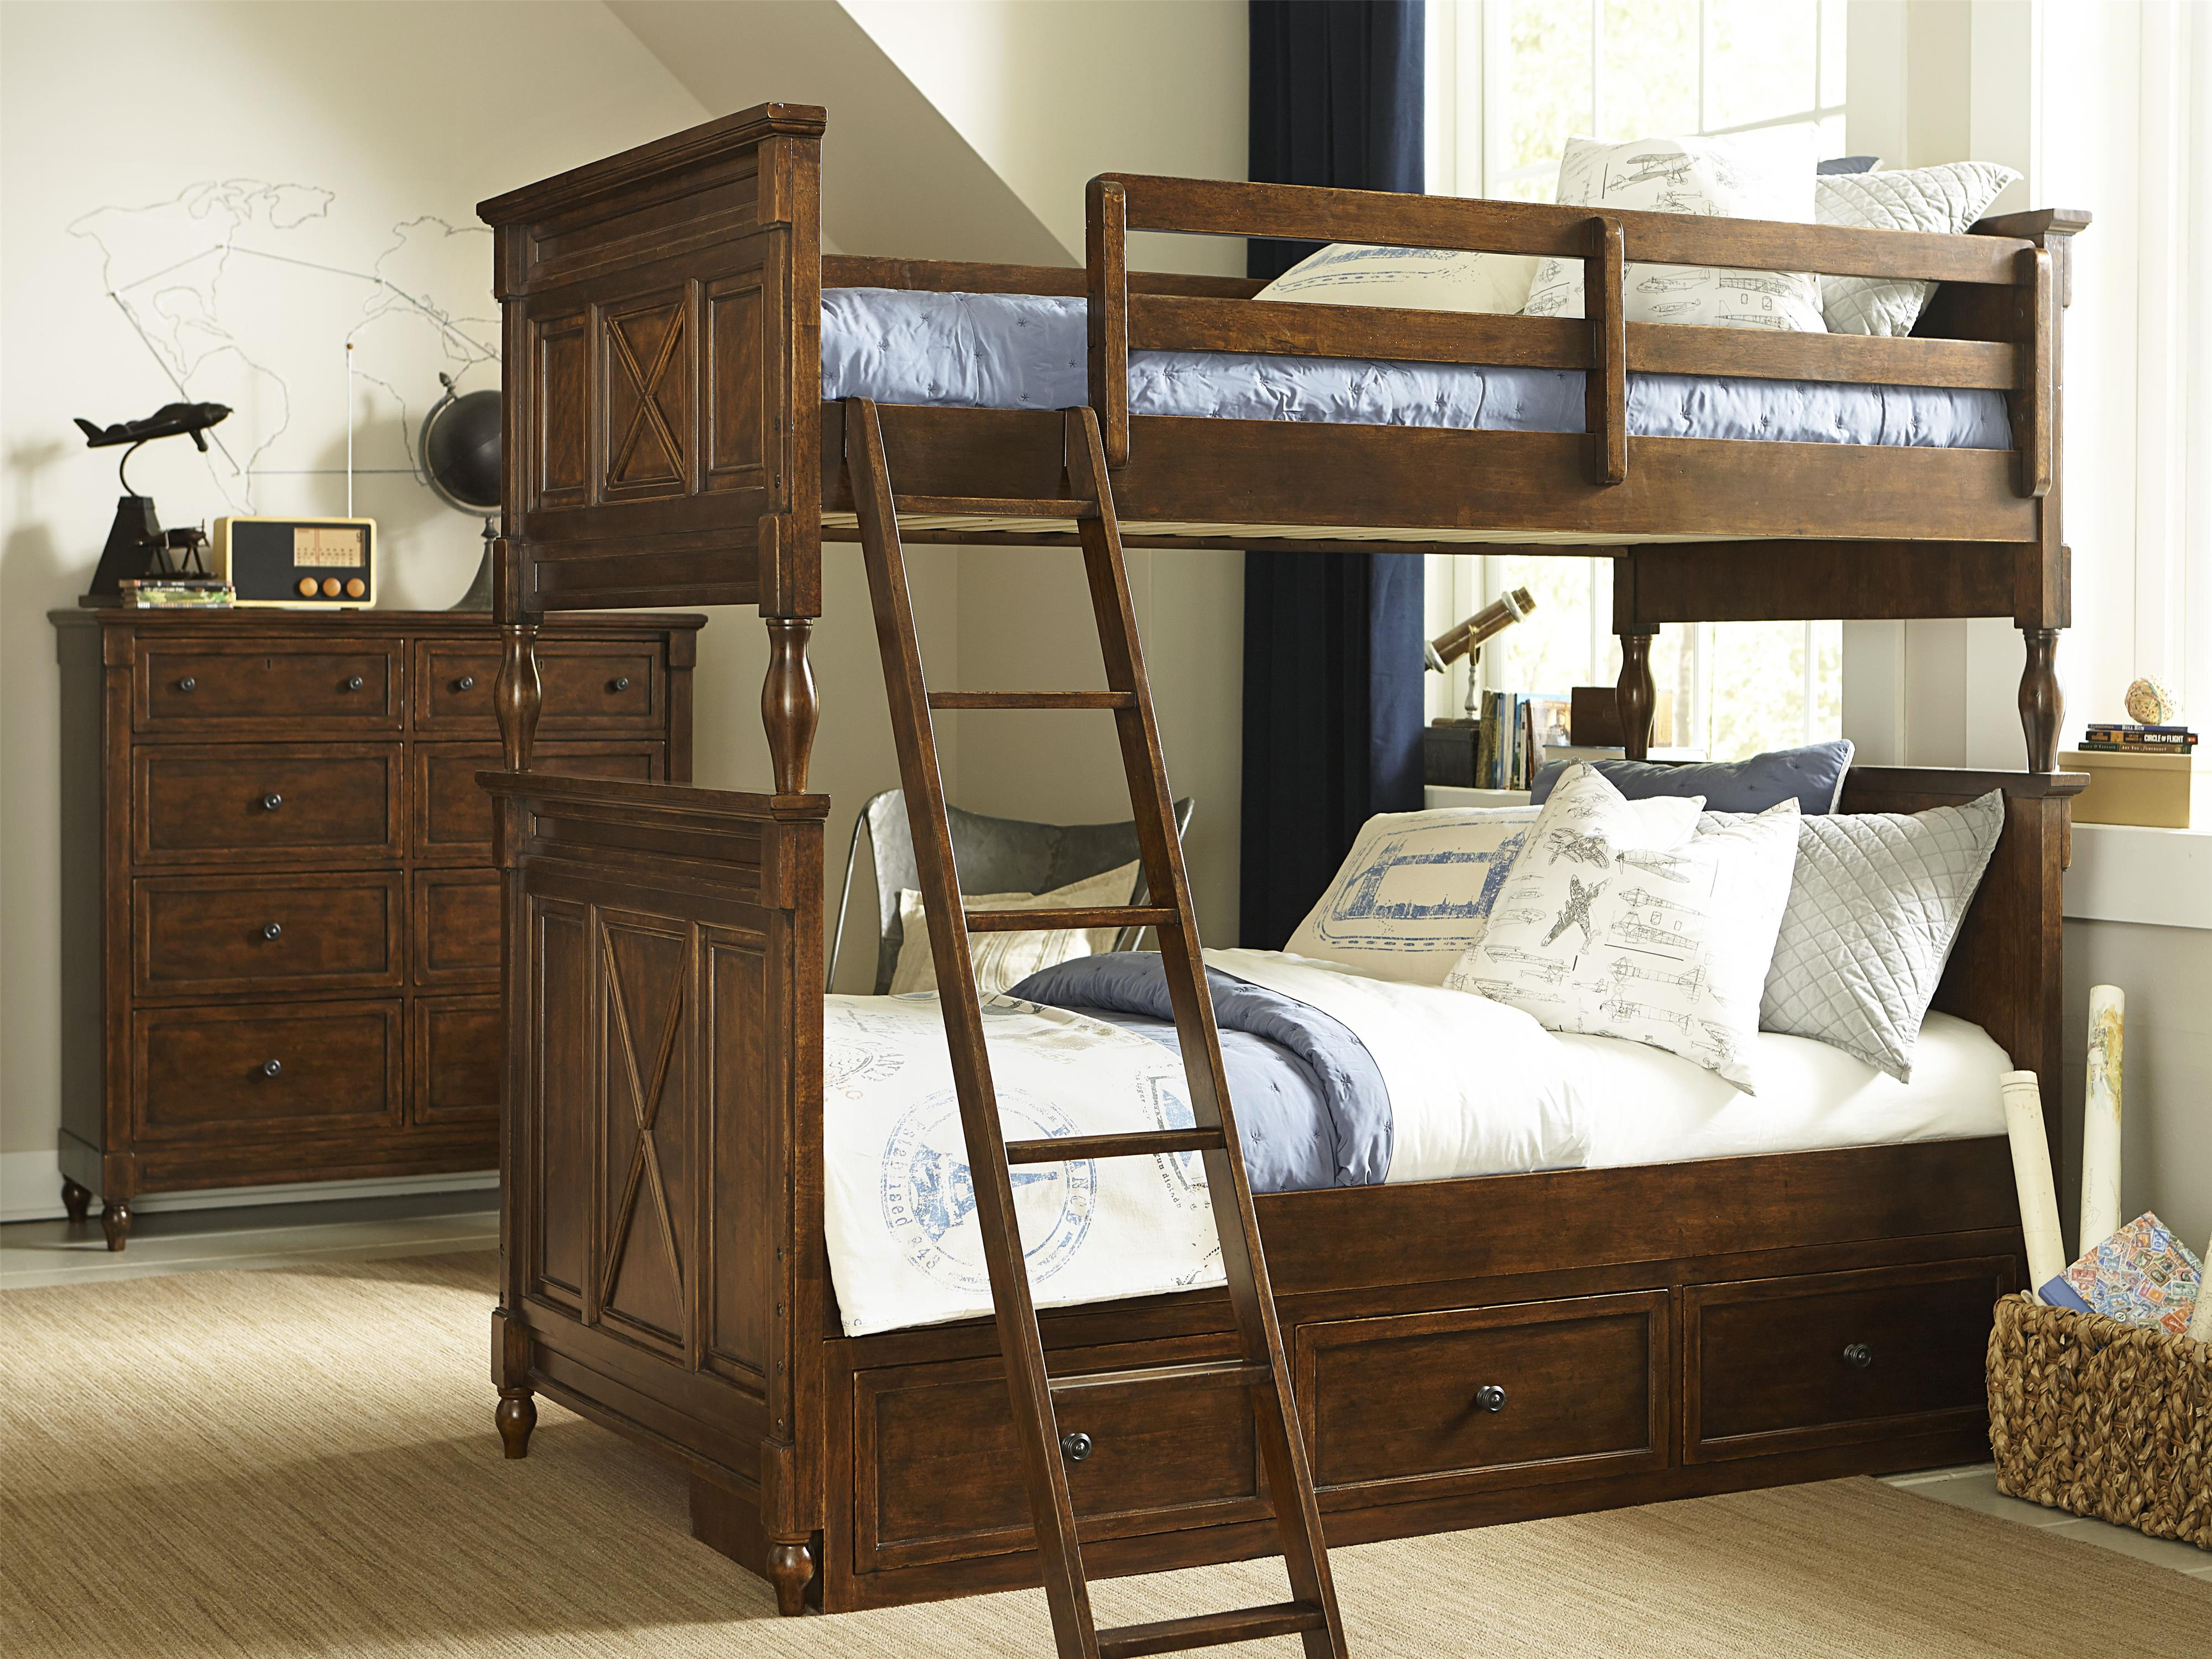 Legacy Classic Bedroom Furniture Legacy Classic Kids Big Sur By Wendy Bellissimo Grow With Me Crib